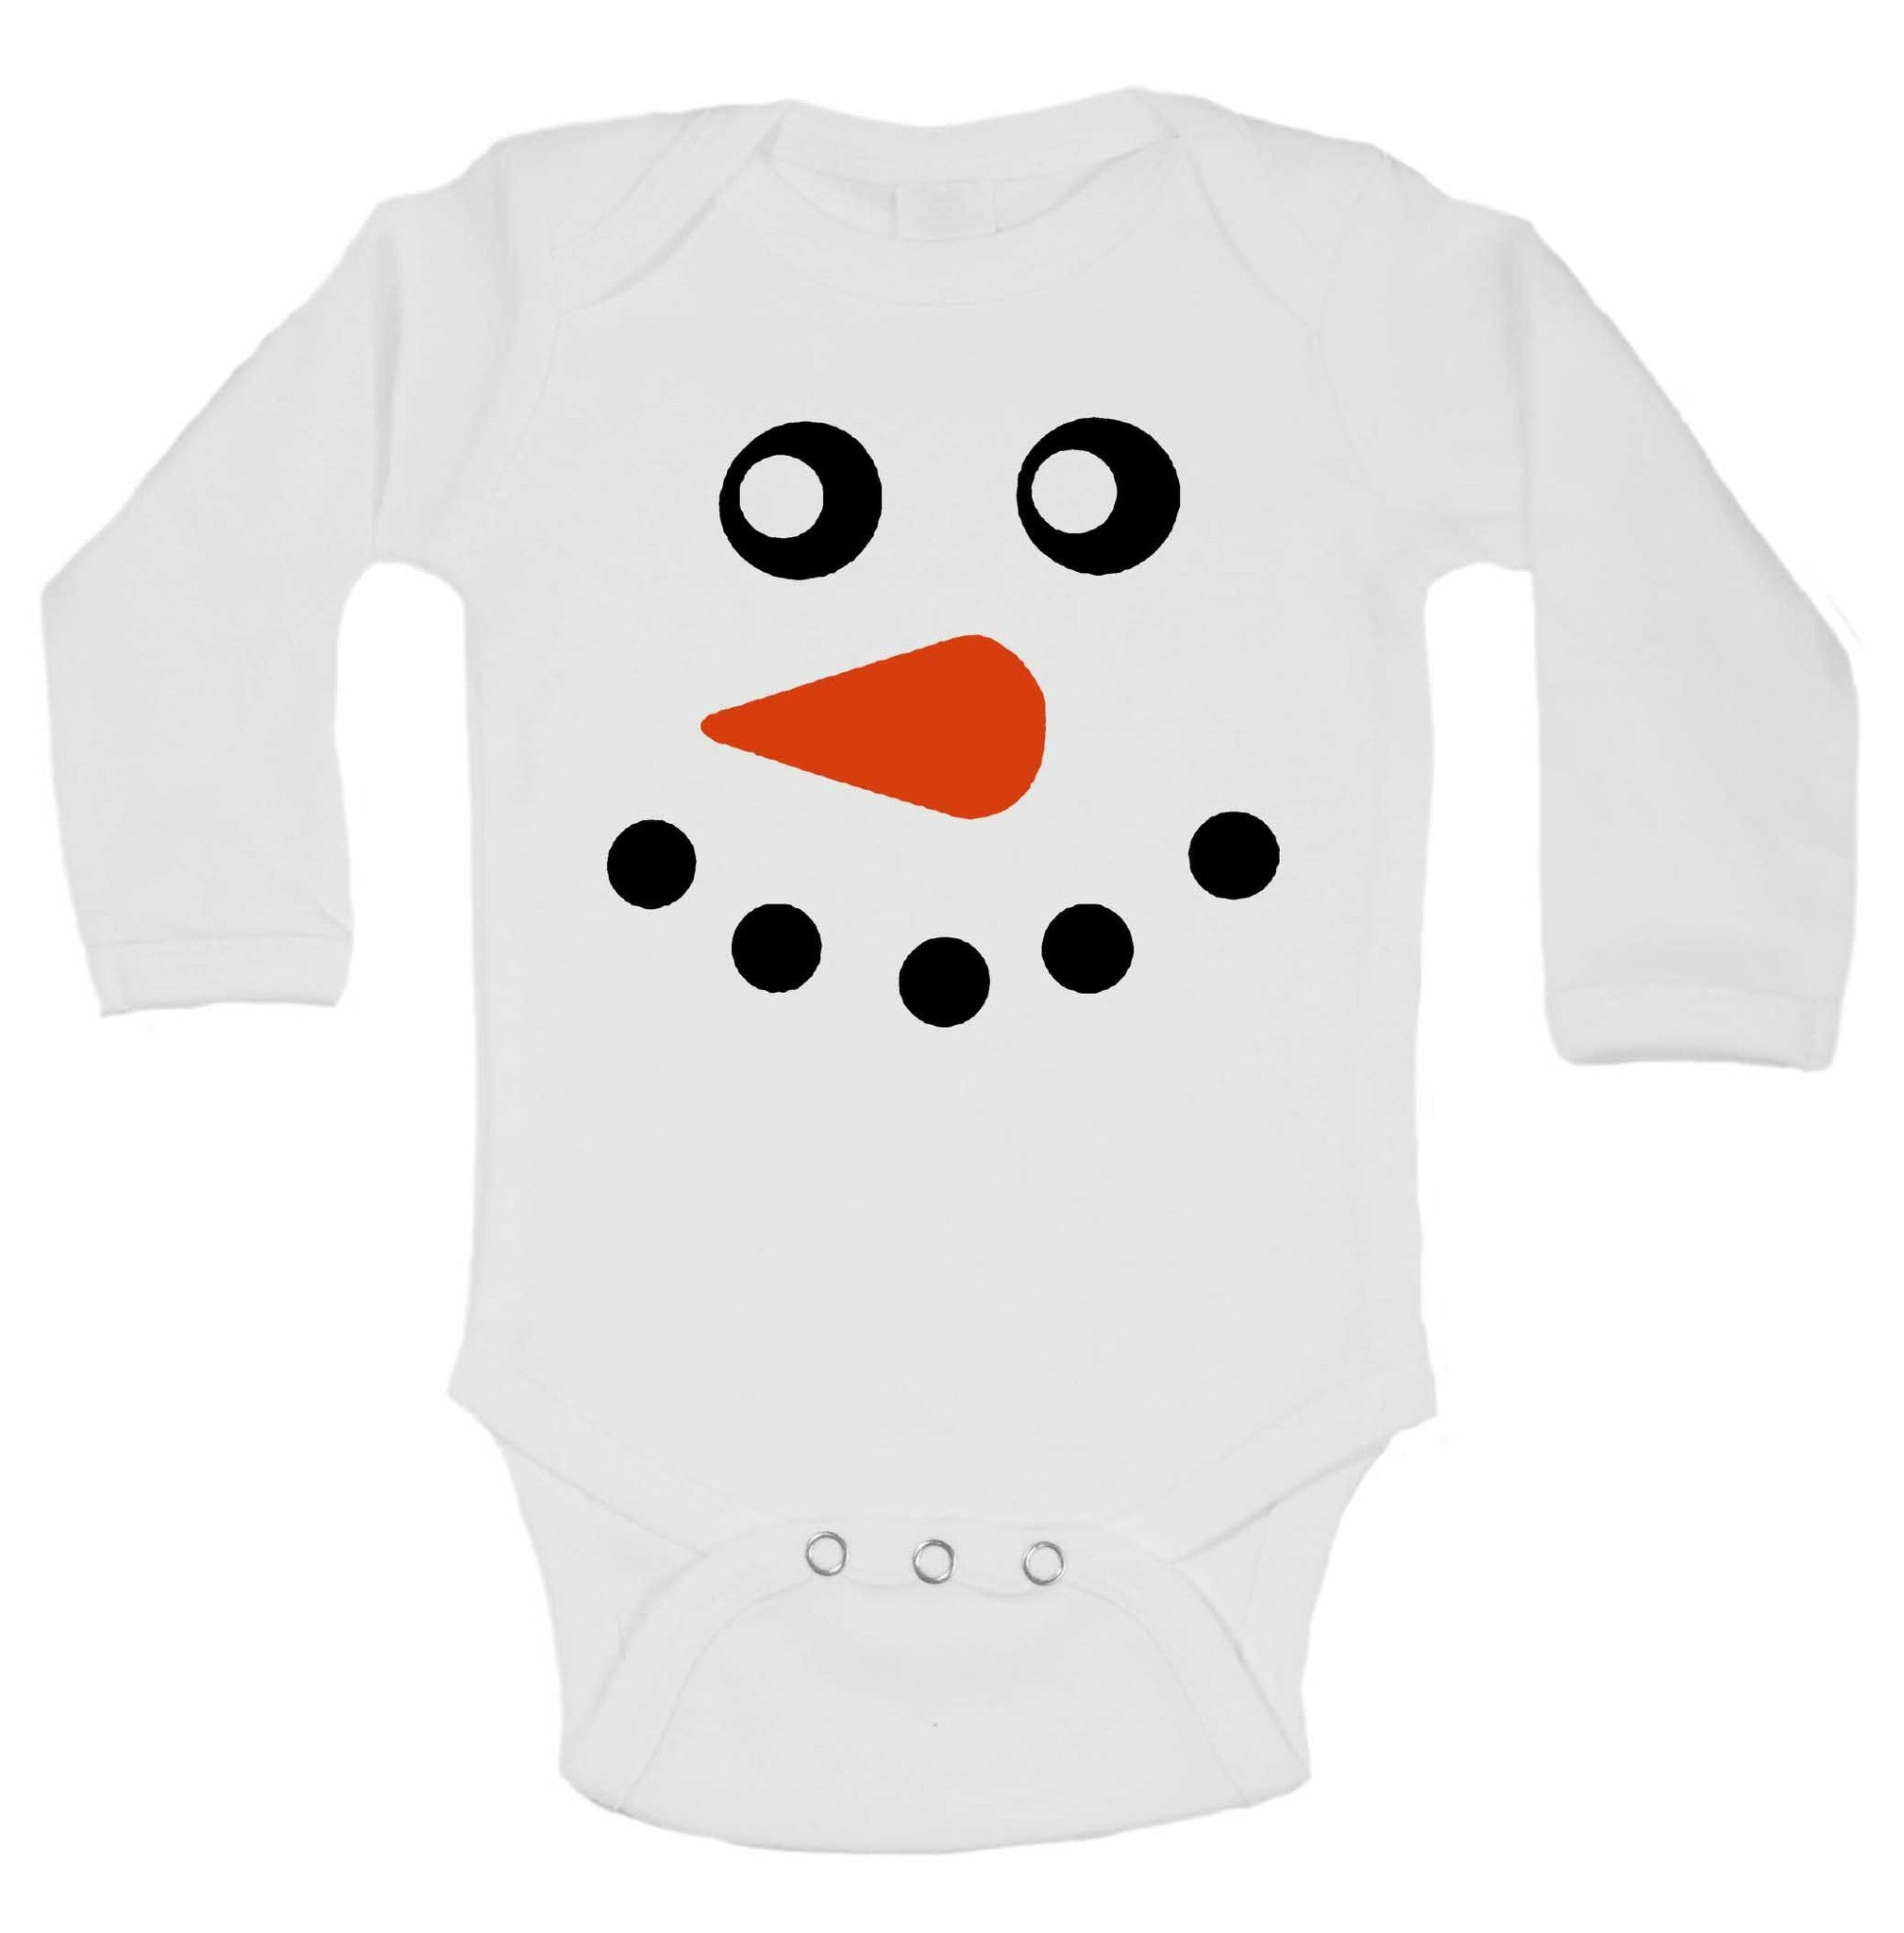 Dotted Funny Kids Onesie - 233 - Funny Shirts Tank Tops Burnouts and Triblends  - 2